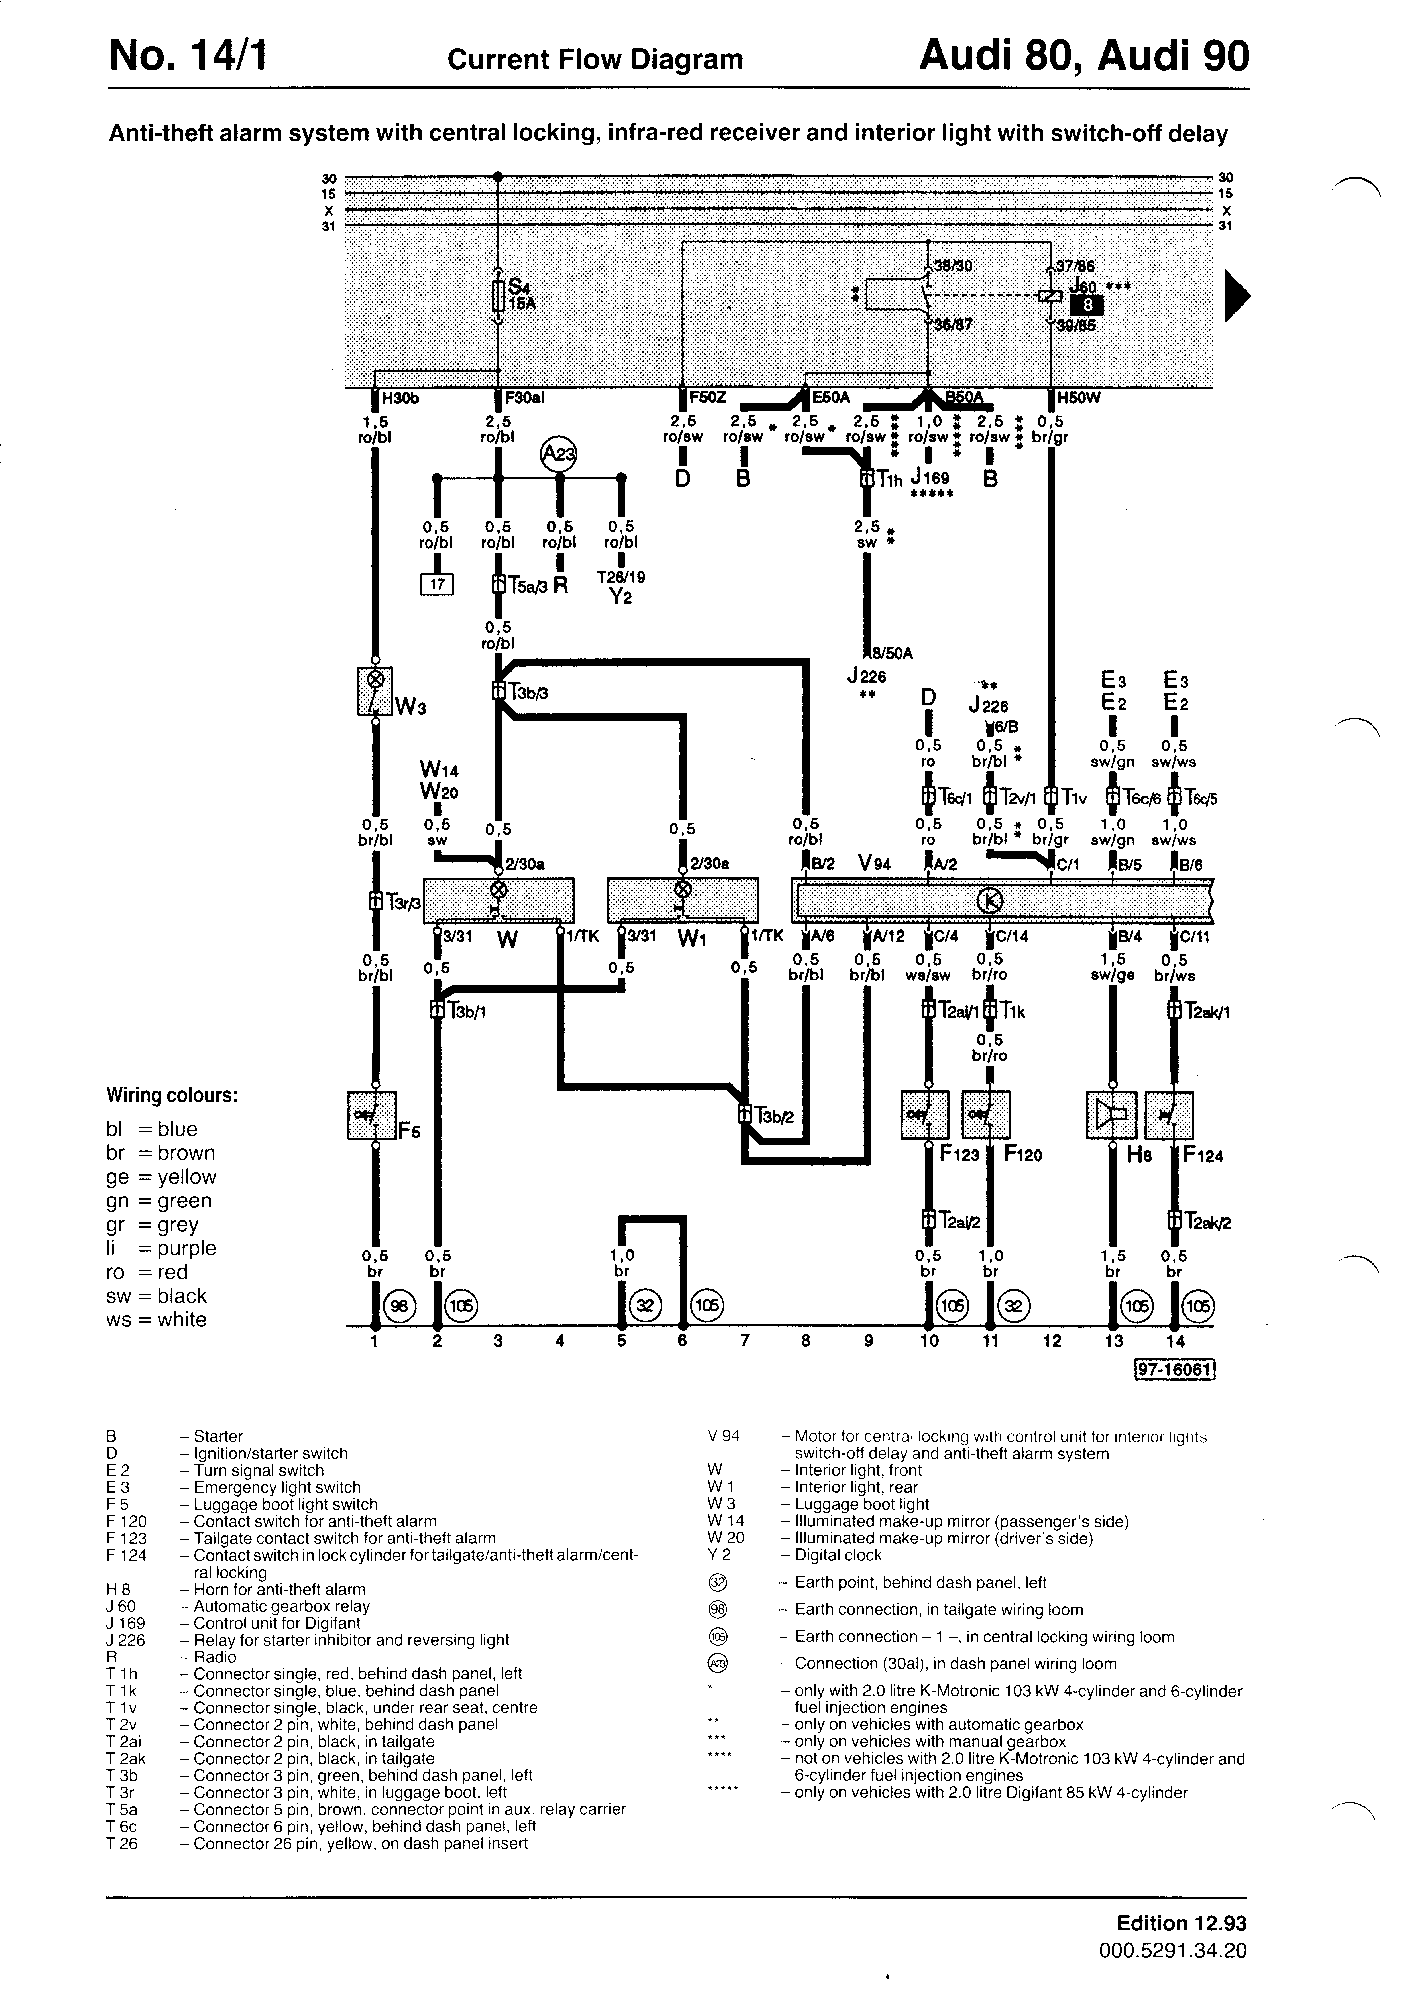 Unique Audi A4 Central Locking Pump Wiring Diagram Diagram Diagramtemplate Diagramsample Diagram Wire Electrical System